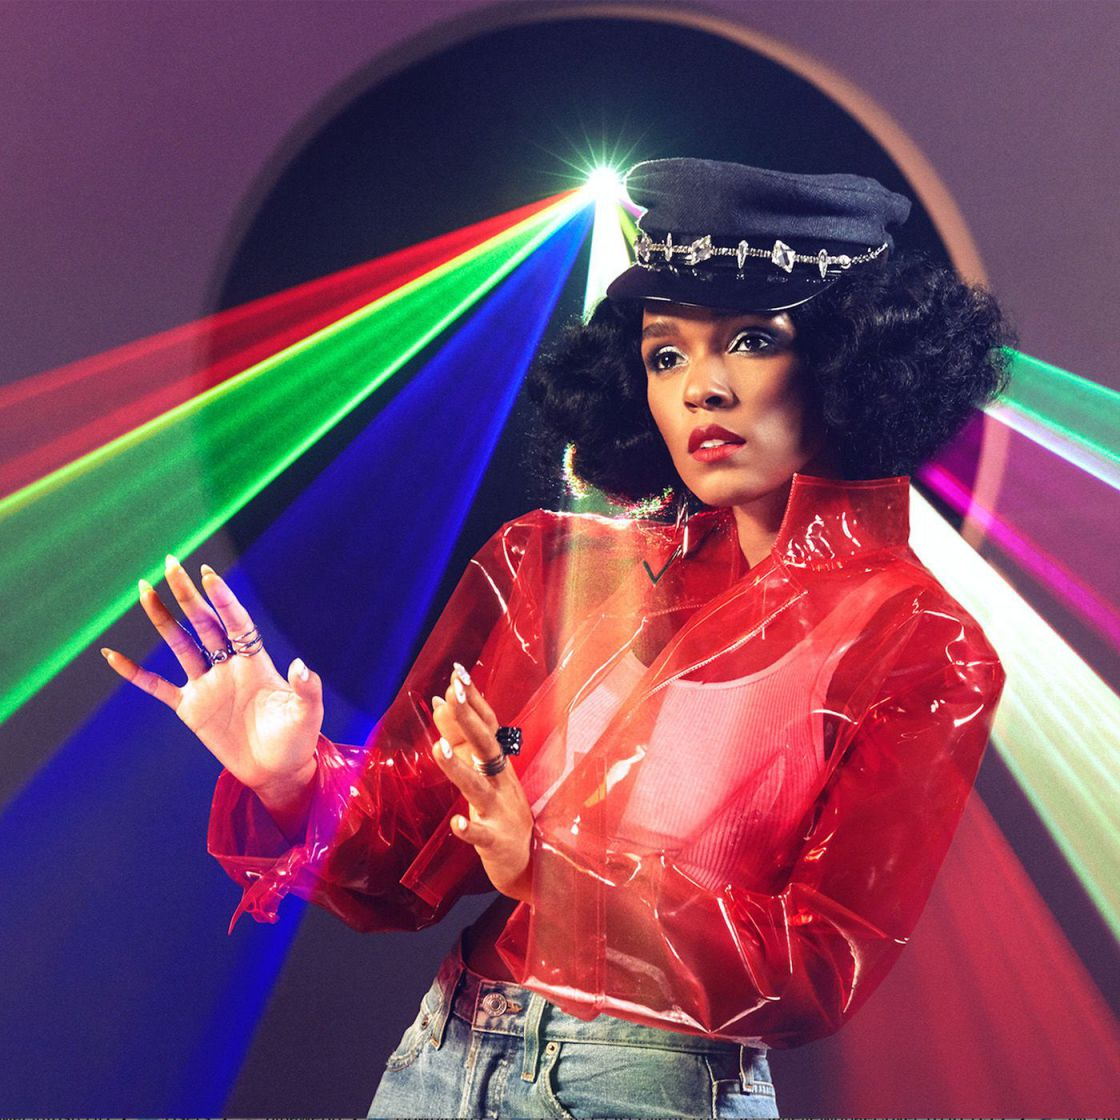 Whatcha' Watchin': Janelle Monáe - In Kansas City